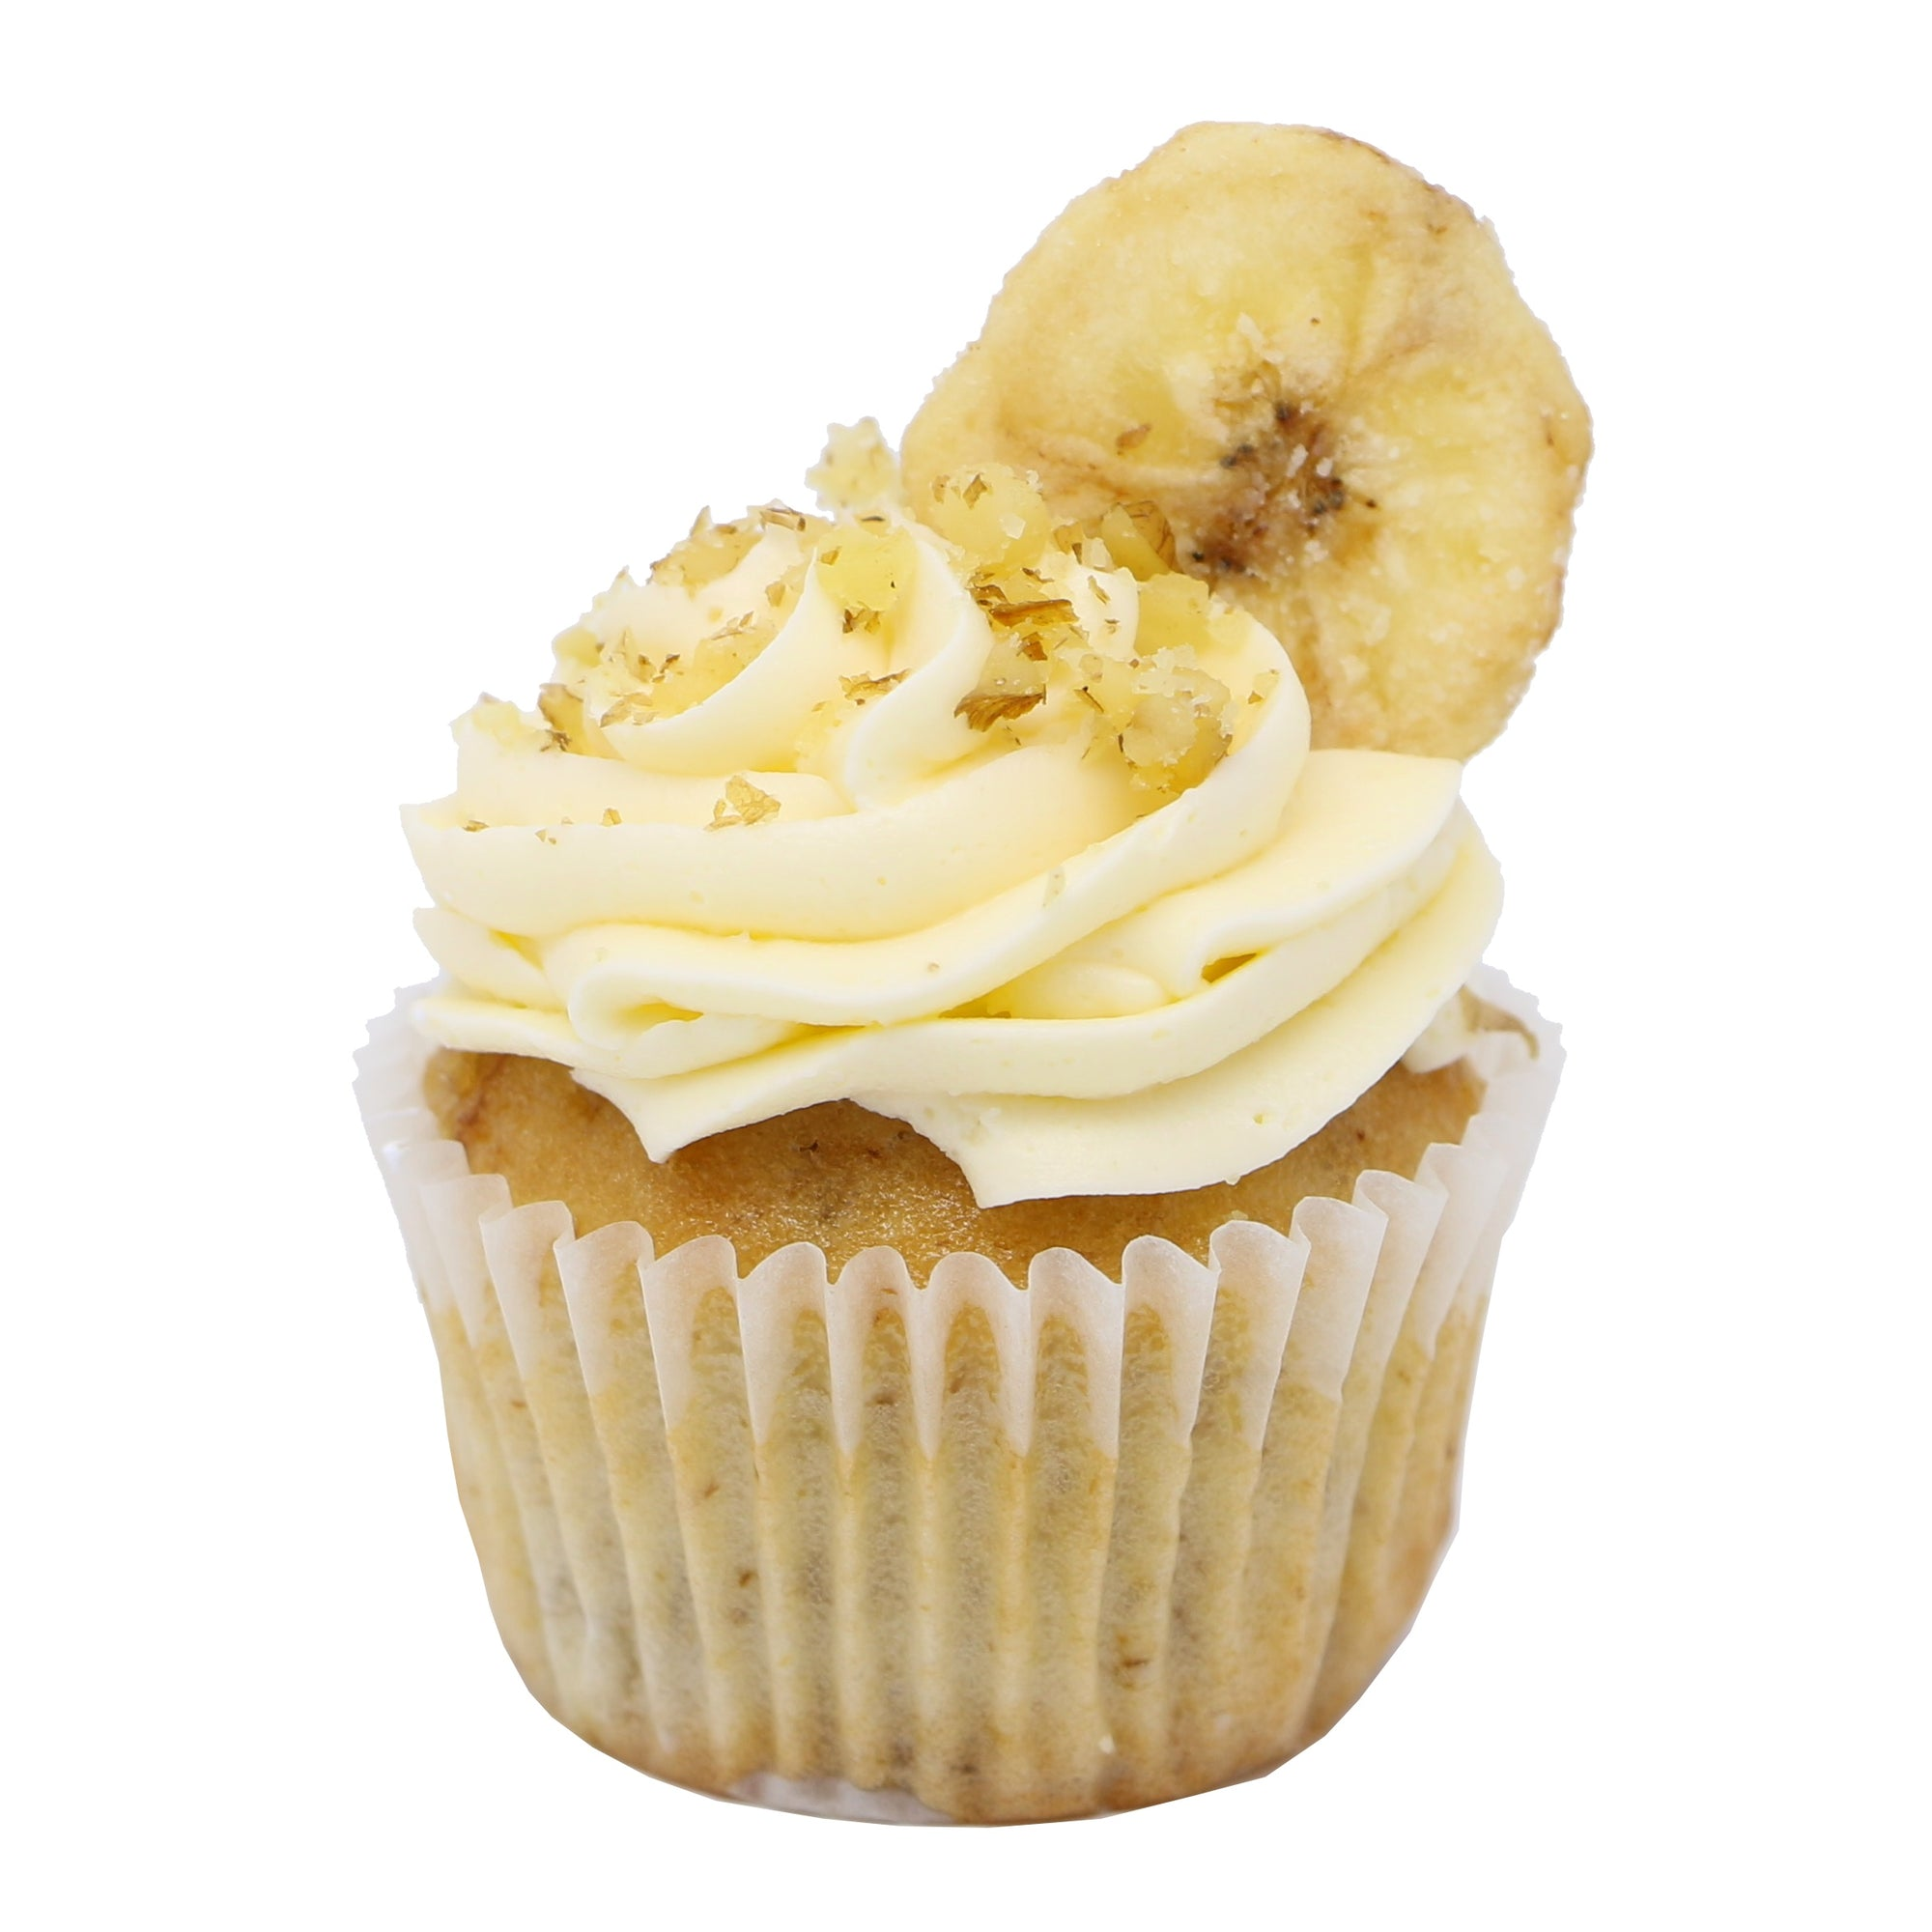 Mini Cupcake - Banana & Walnut - Treats2eat - Wedding & Birthday Party Dessert Catering Near Me